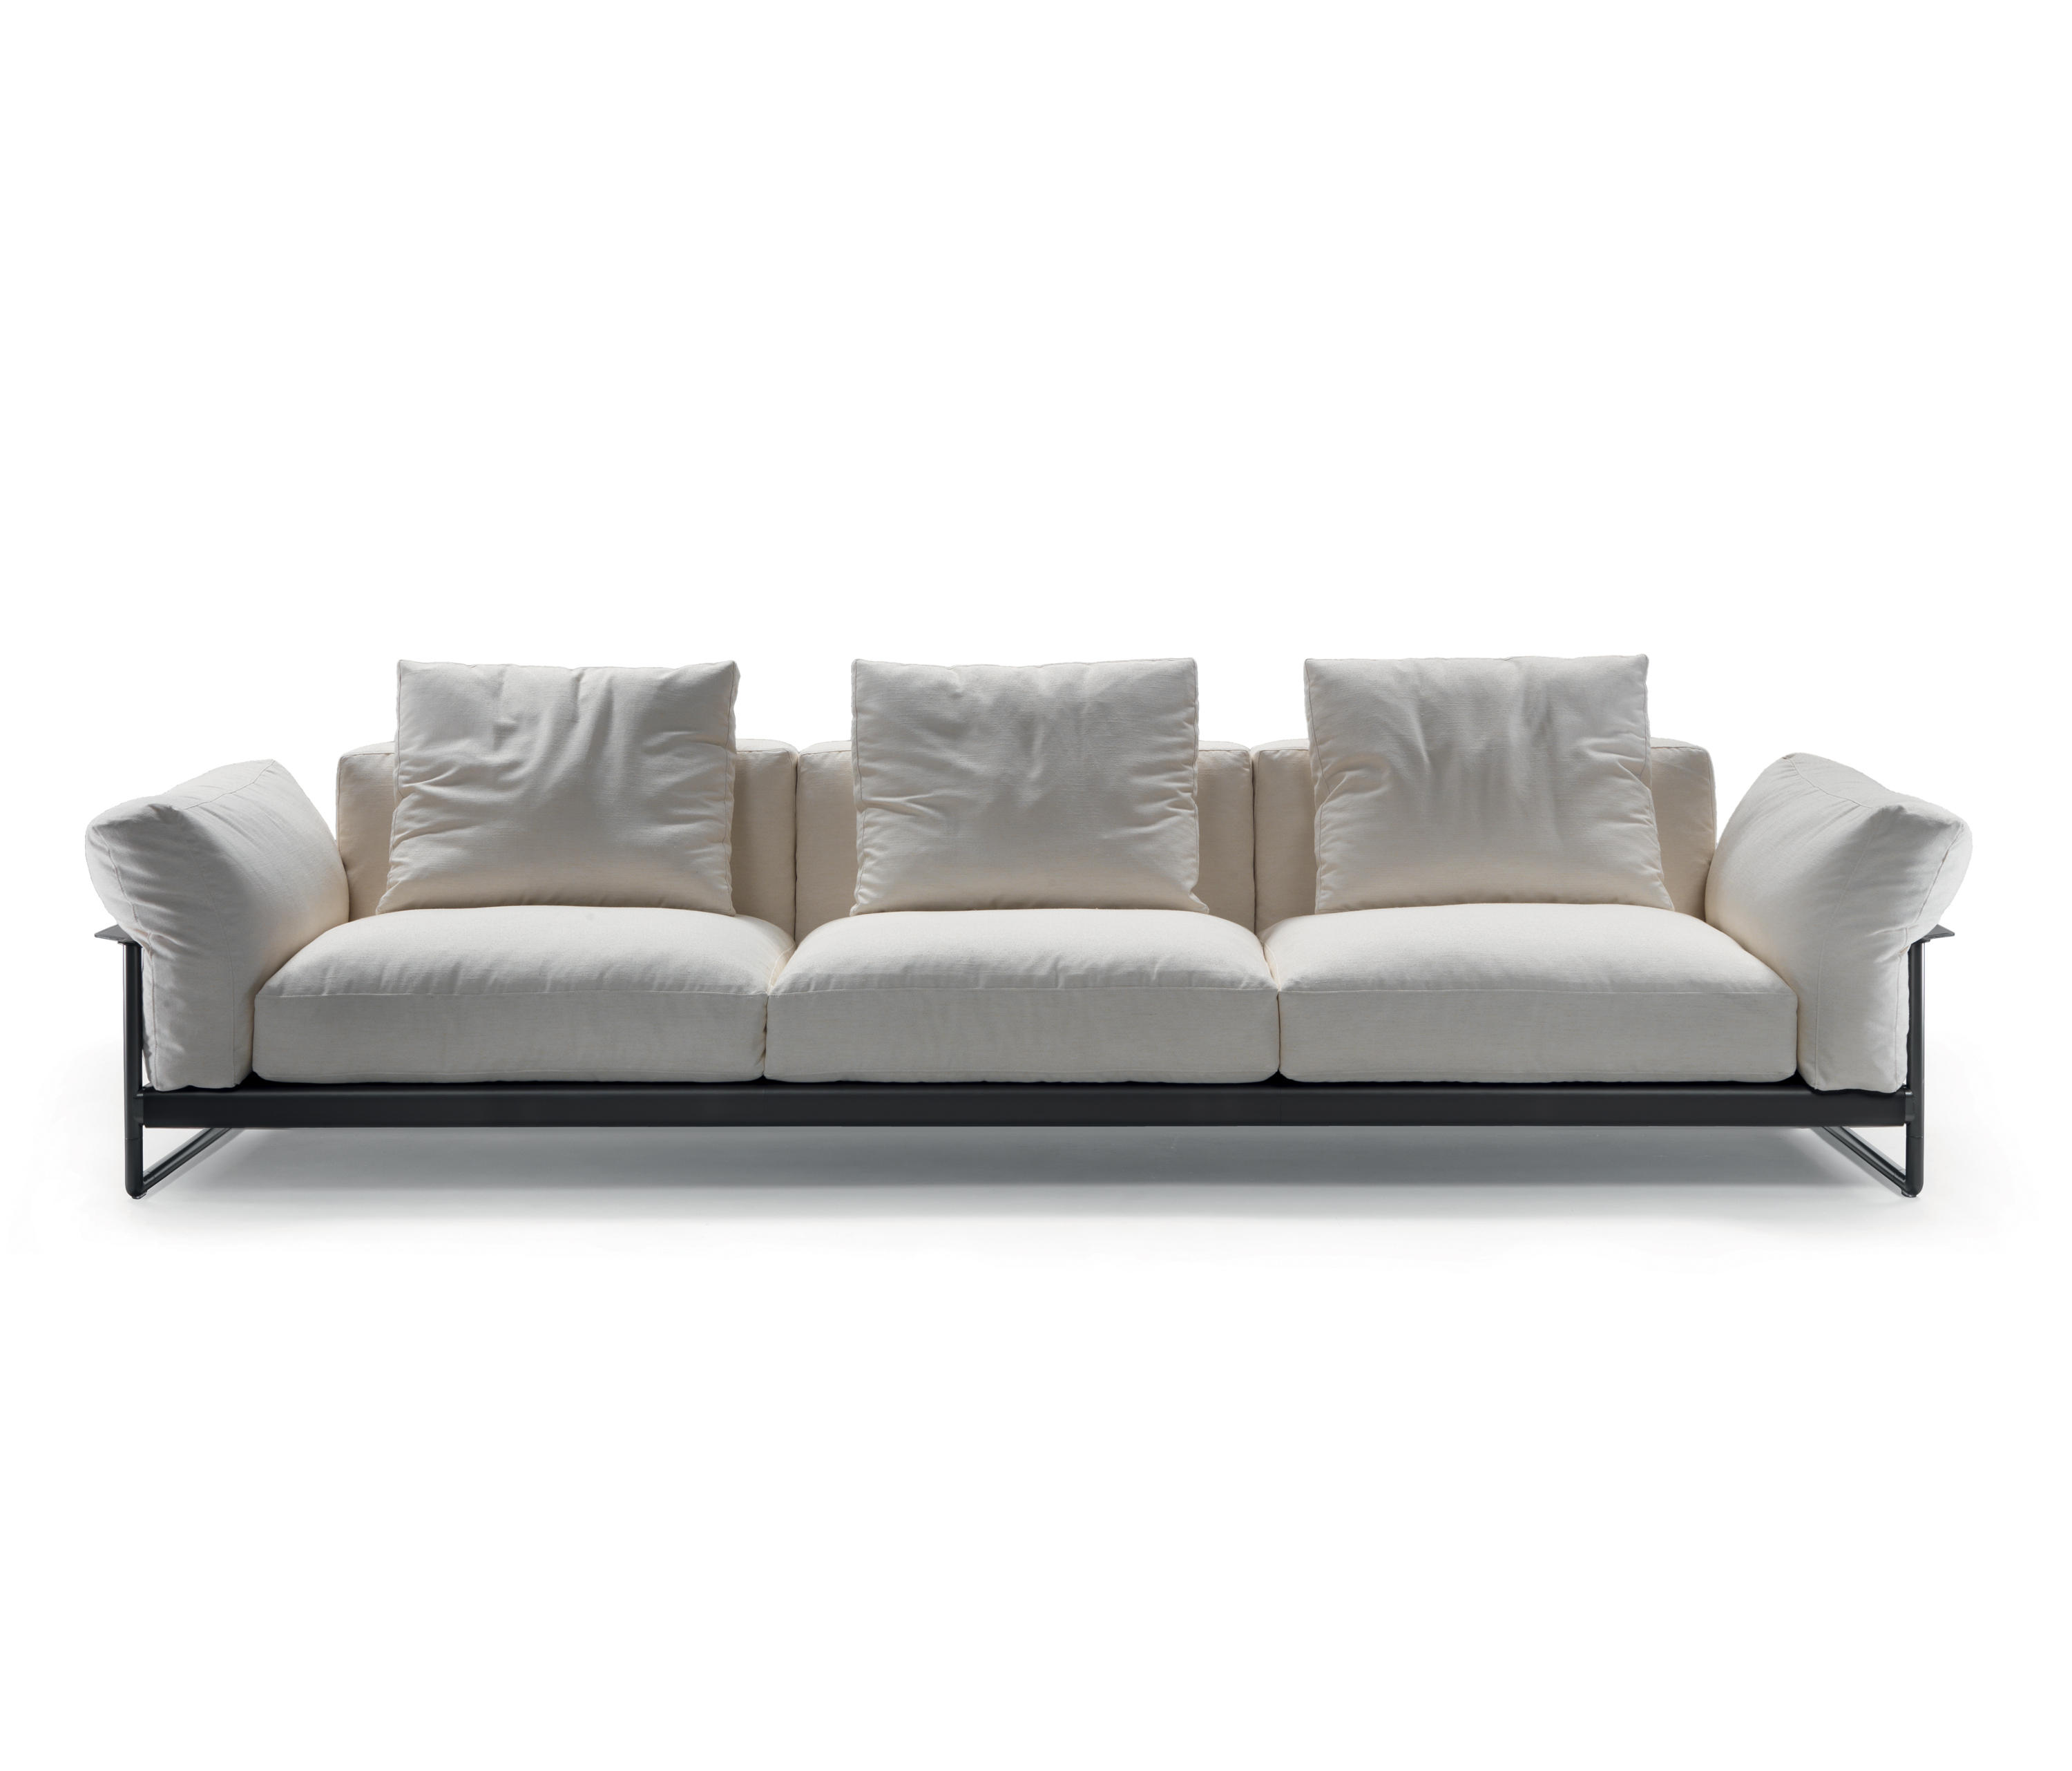 Genial Zeno Light By Flexform | Sofas ...